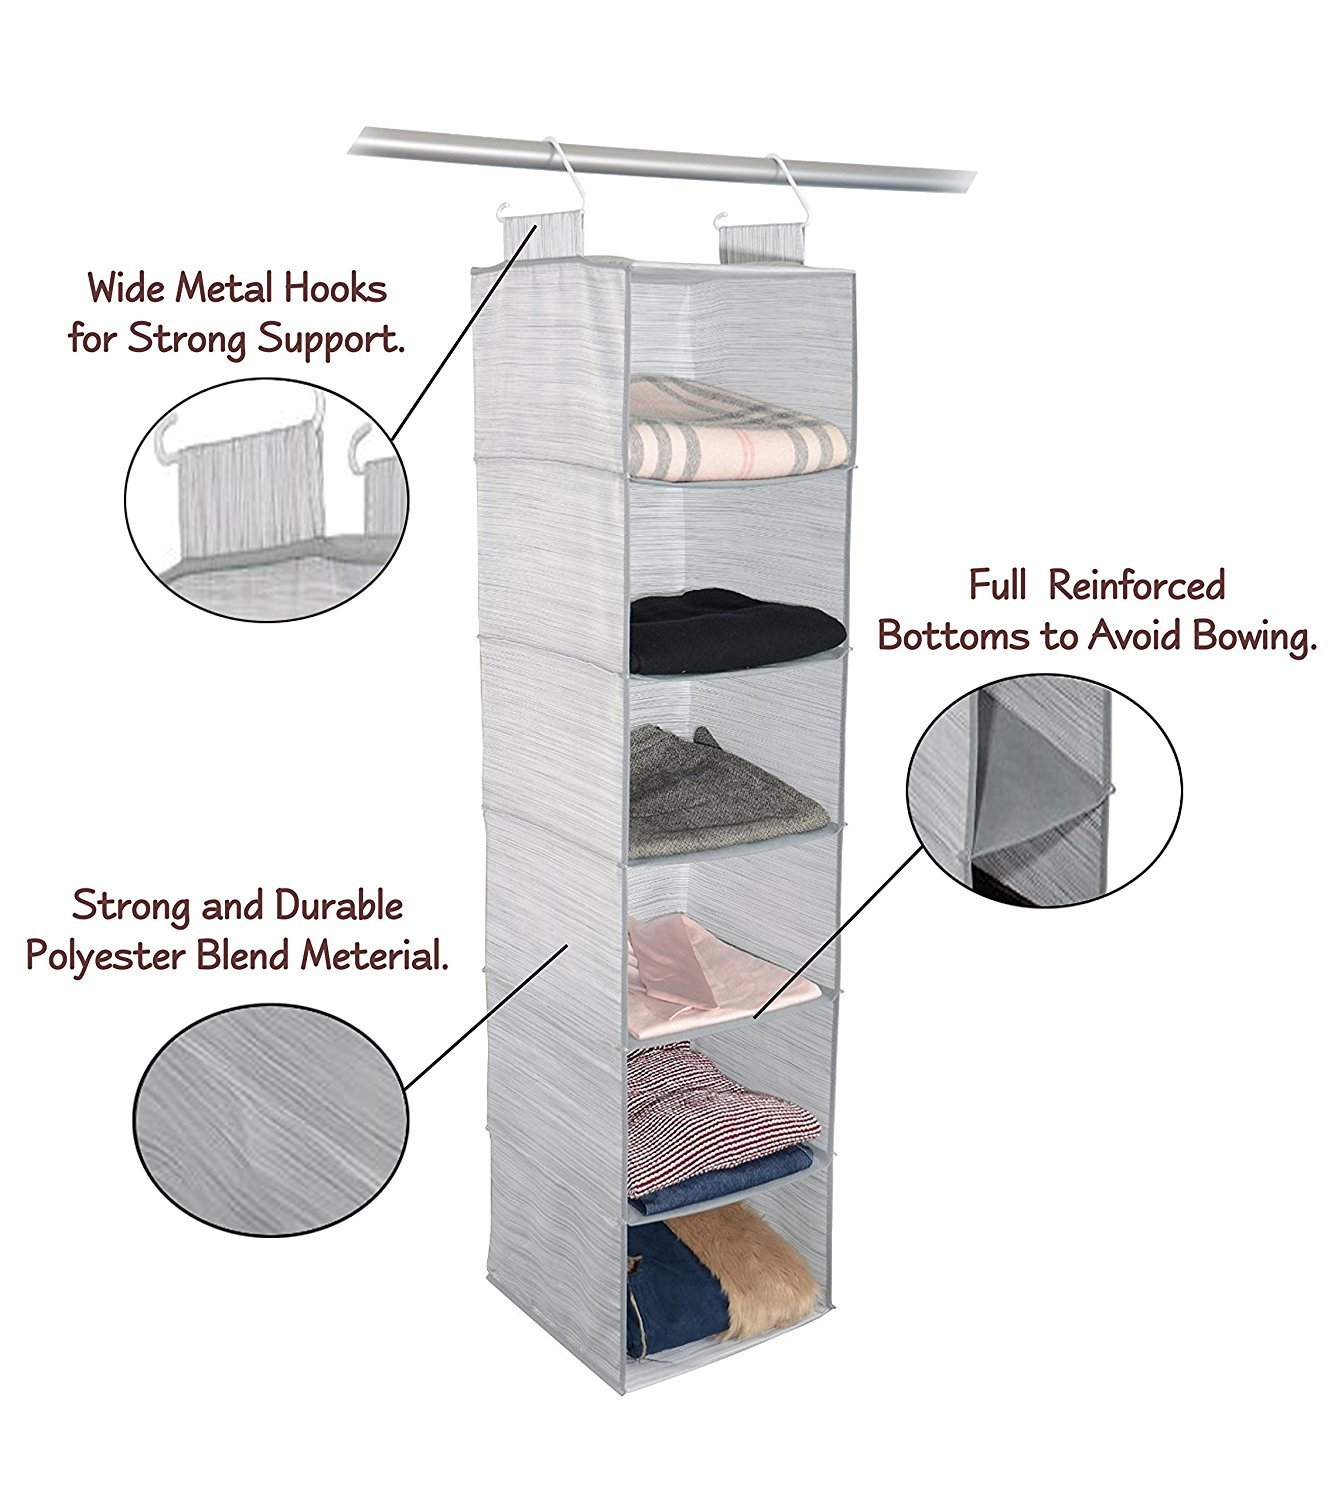 Adorn Insta-Shelf 6 Tier Closet Organizer Adorn Home Essentials AD-1028